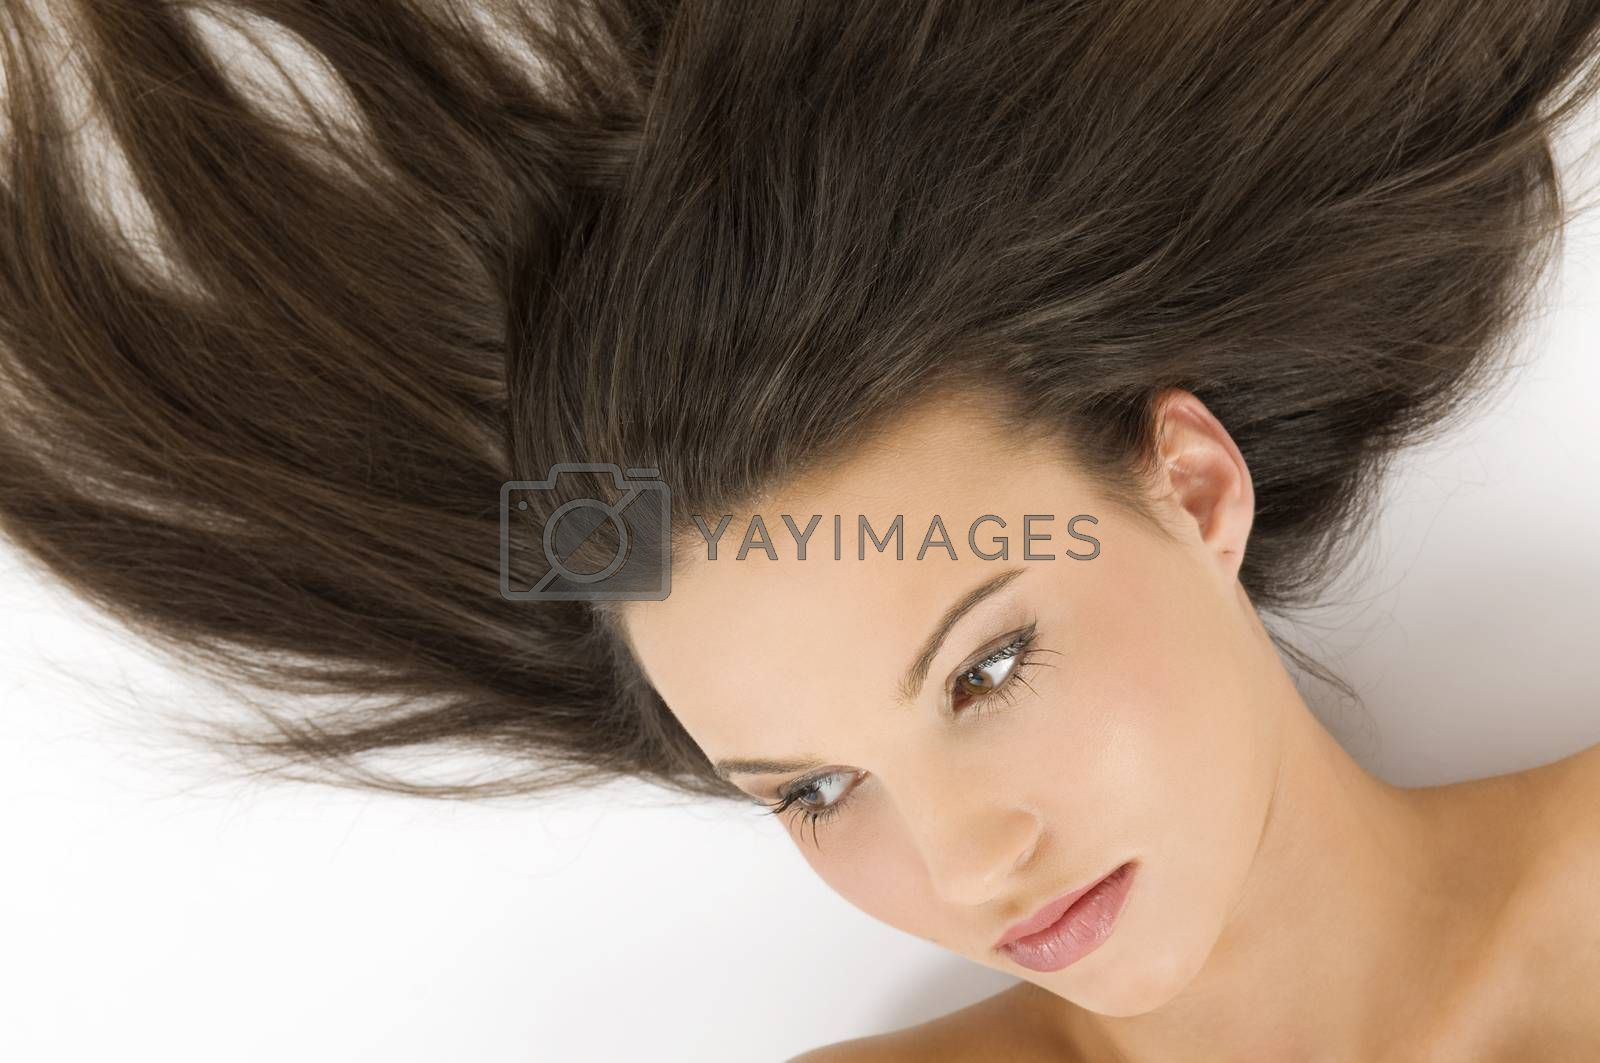 Royalty free image of hair by fotoCD